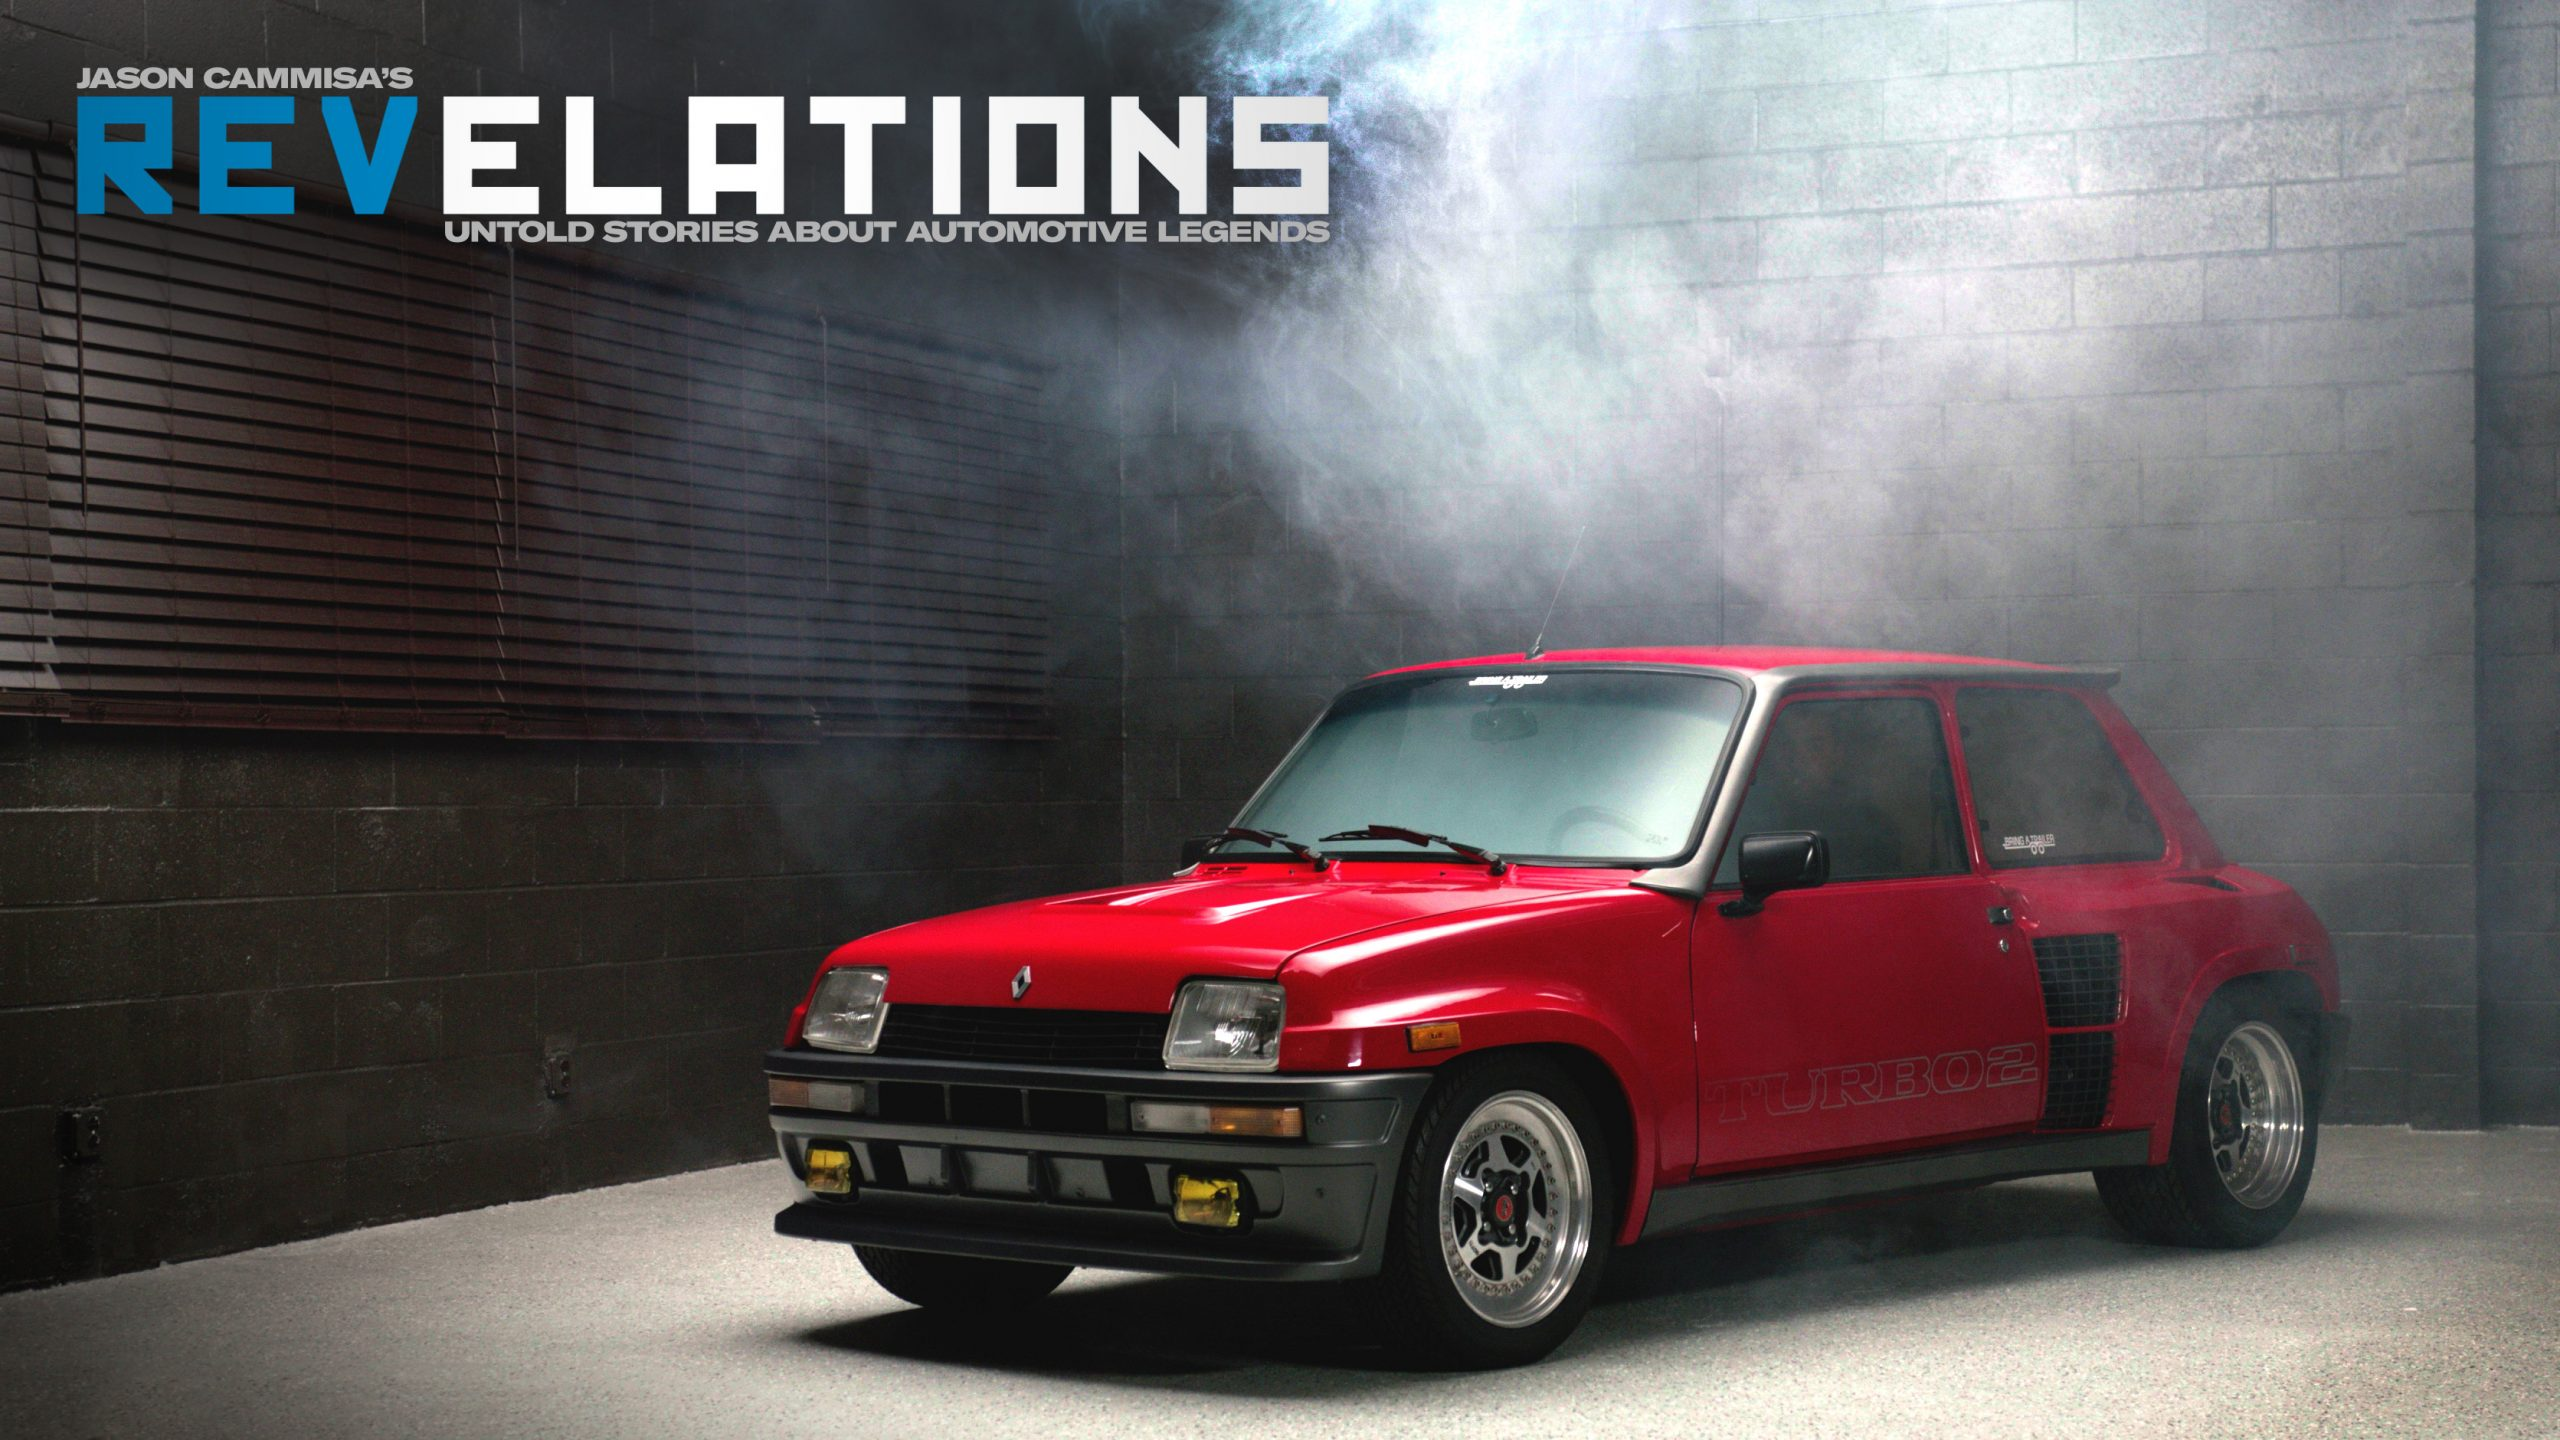 Revelations R5 Turbo